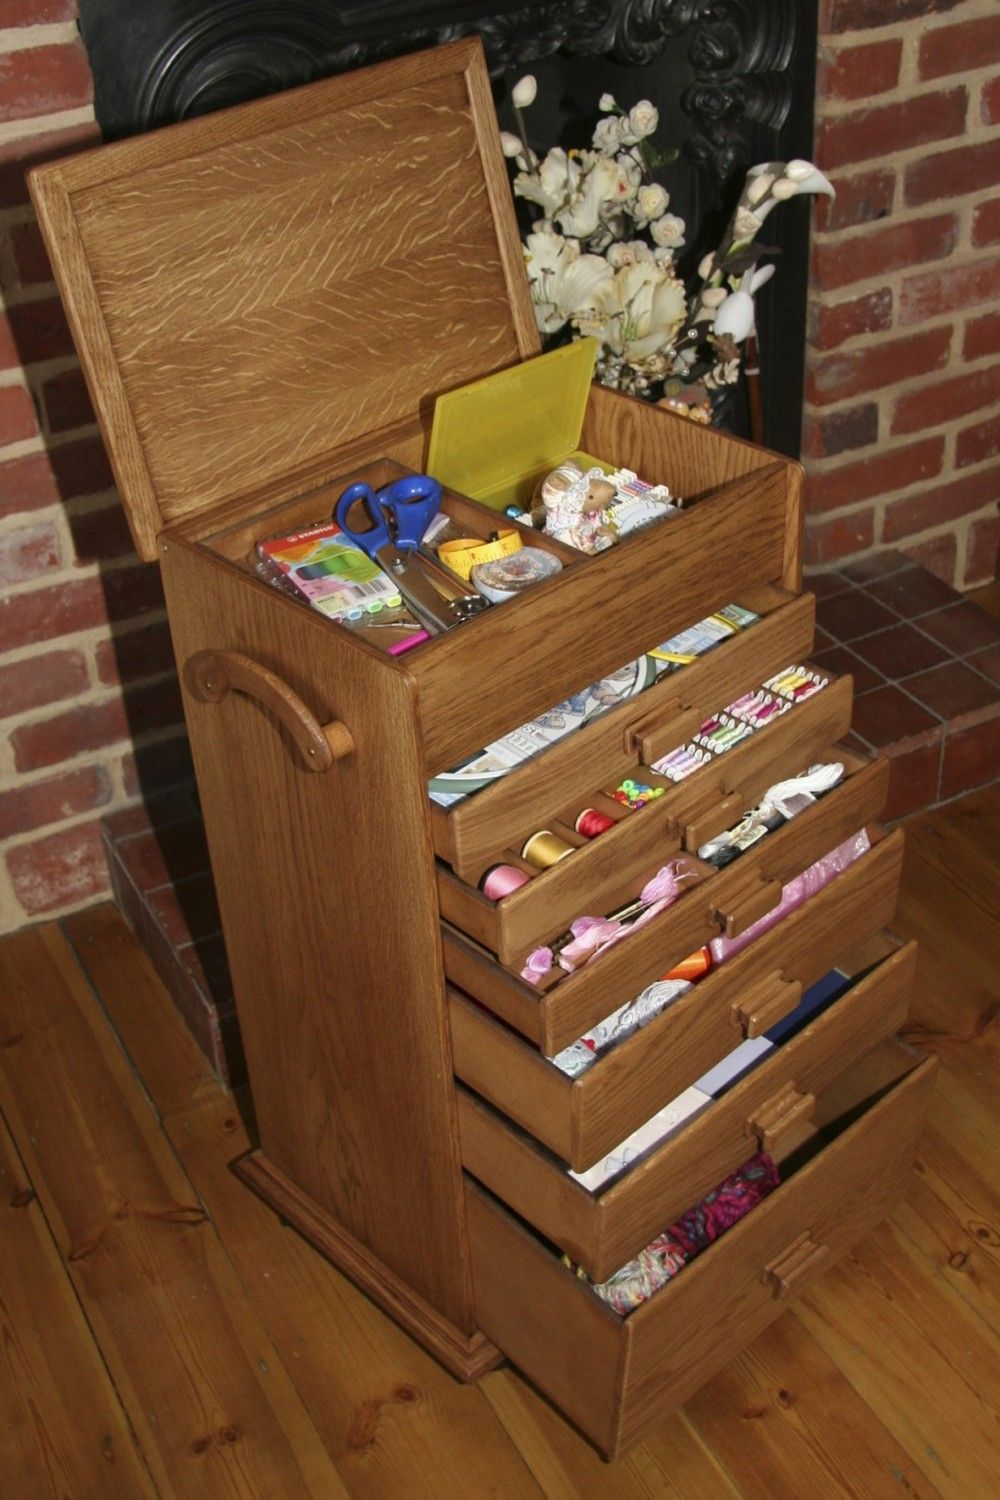 Wooden Sewing Box : wooden, sewing, Large, Handmade, Wooden, Sewing, Workbox, Inspiration